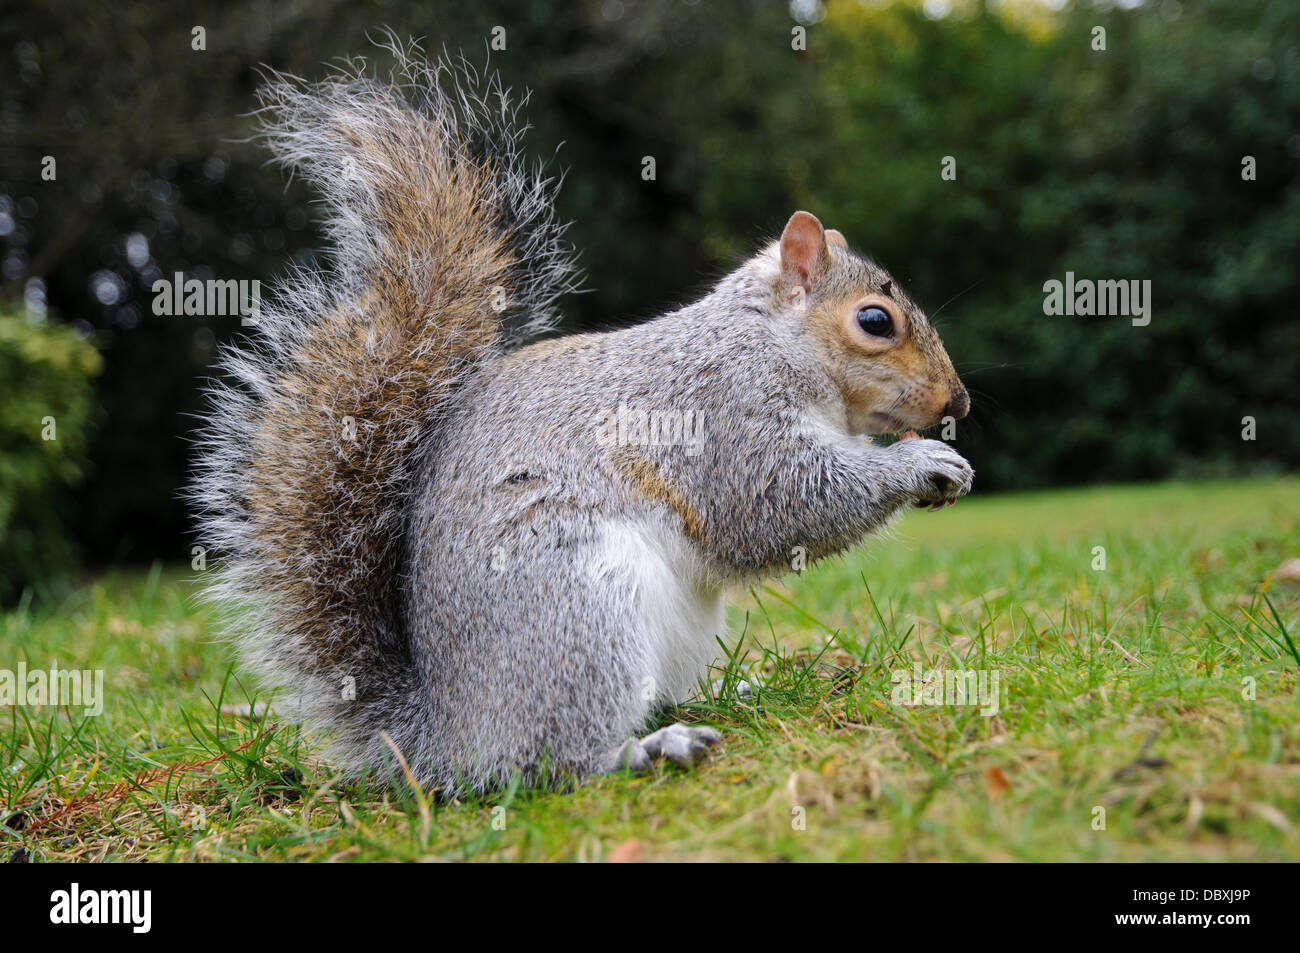 A grey squirrel (Sciurus carolinensis) sitting on the grass and eating a nut in Greenwich Park, London. December. - Stock Image